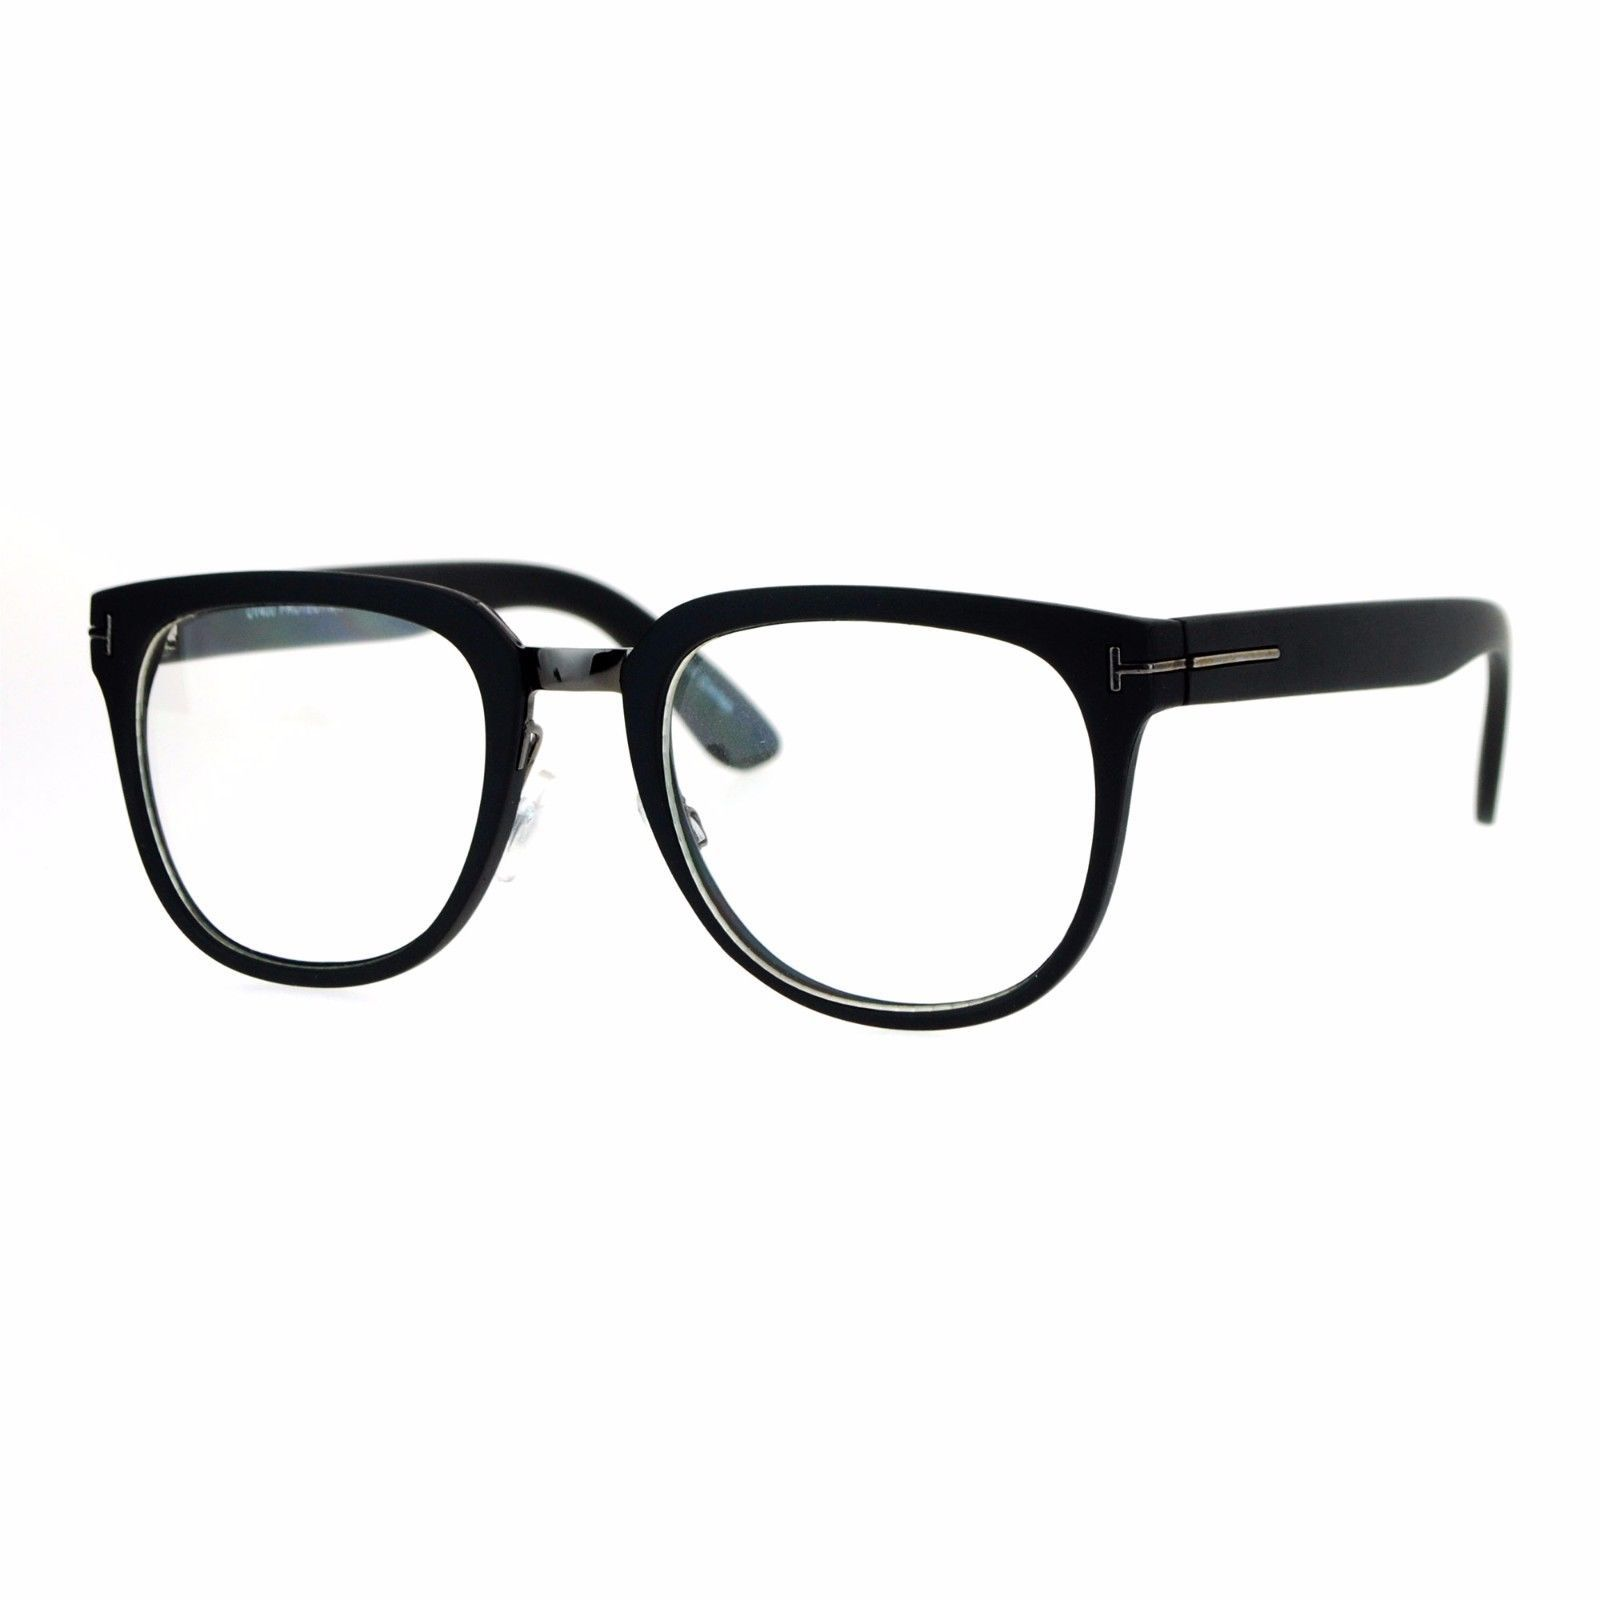 Clear Lens Eyeglasses Unisex Designer Fashion Square Frame UV 400